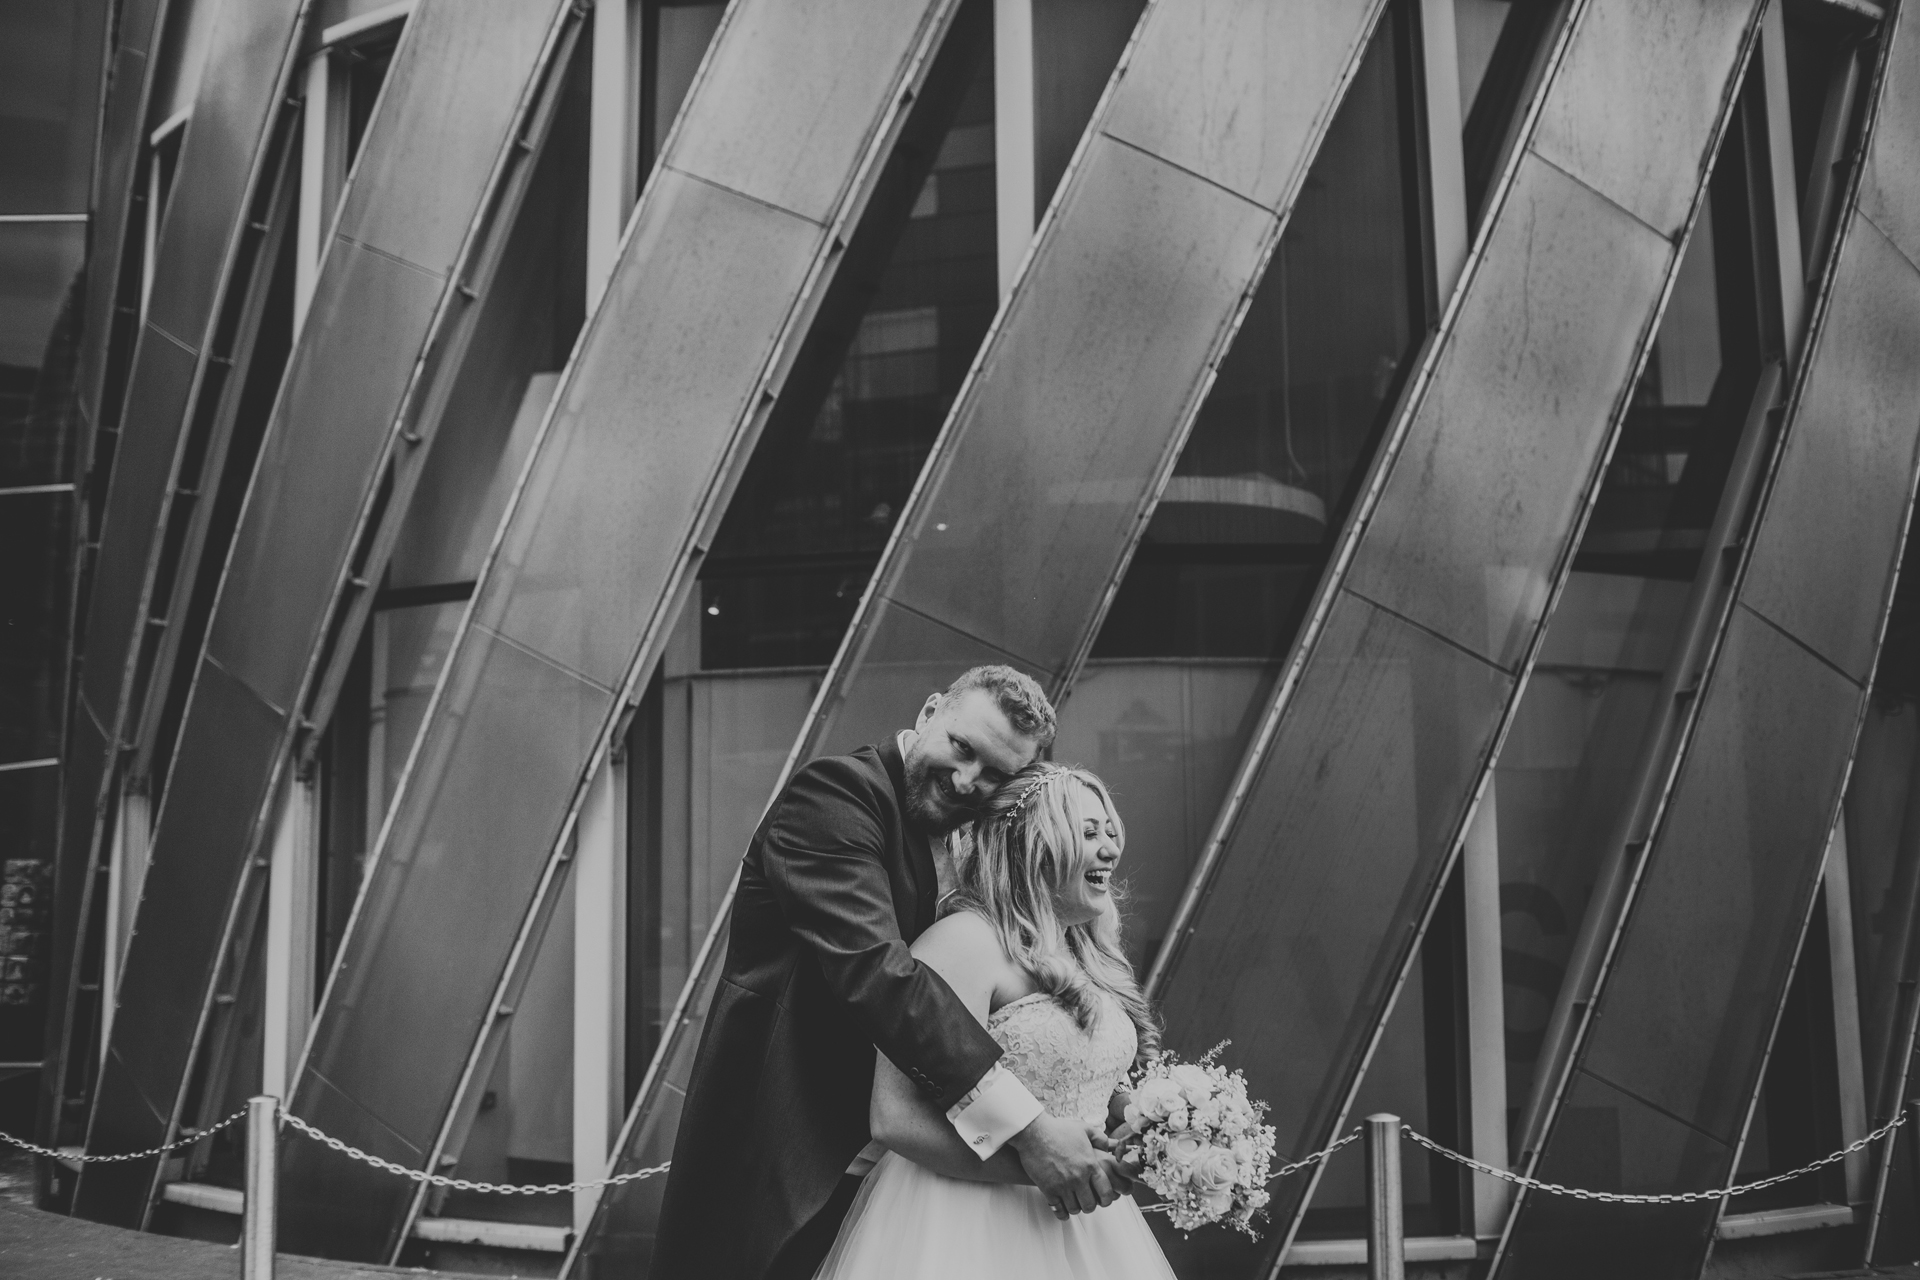 Black and white photo of bride and groom together.